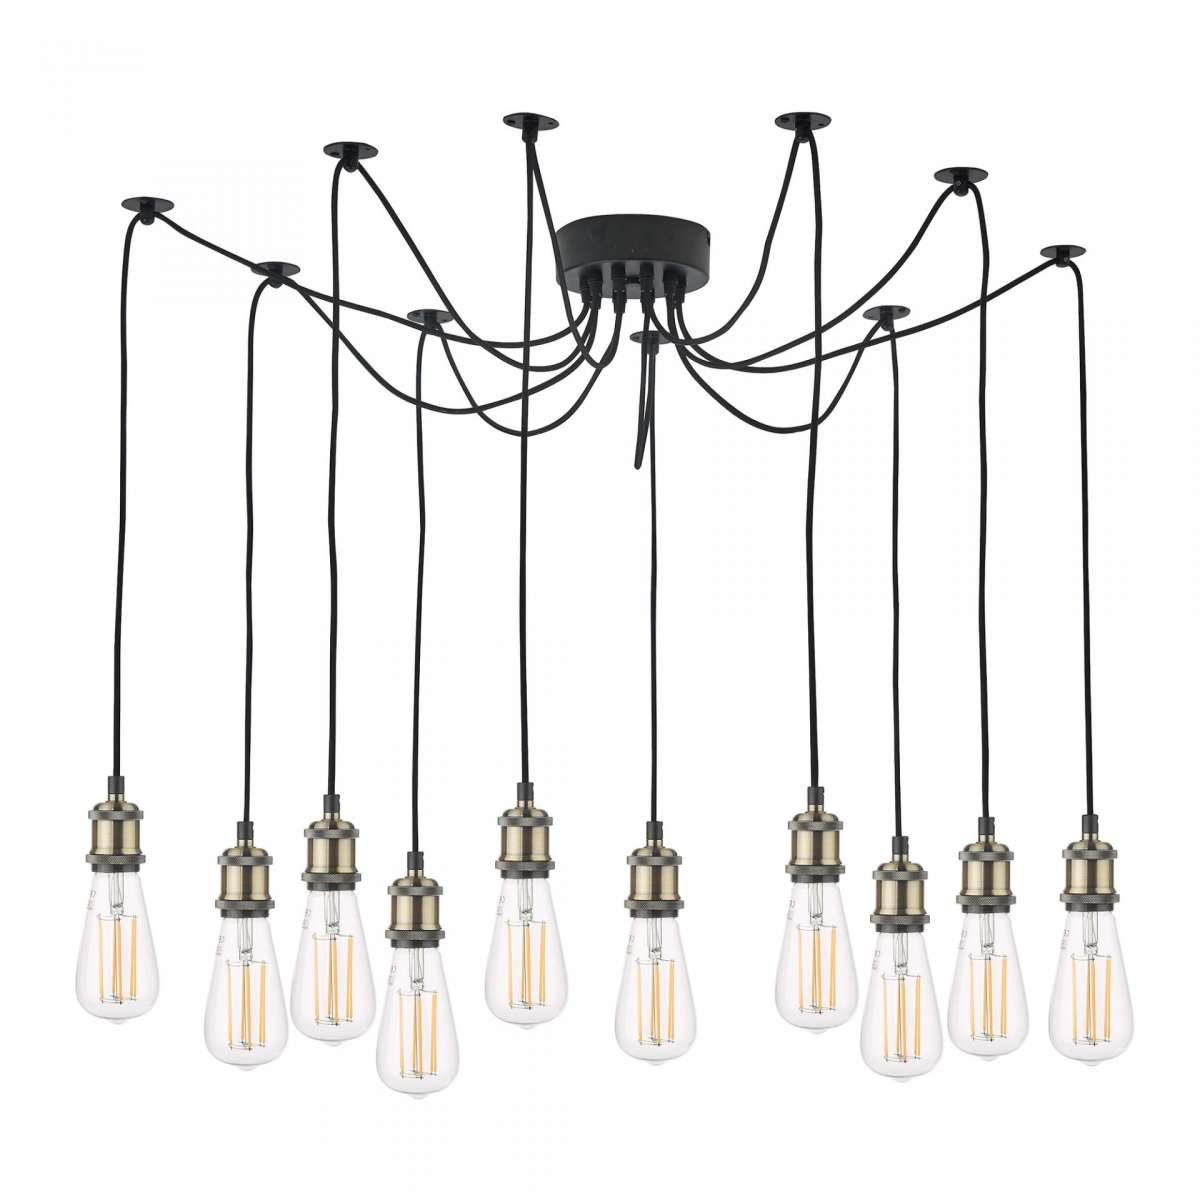 Dar Lighting WAC2375 Waco 10 Light Pendant Antique Brass Matt Black